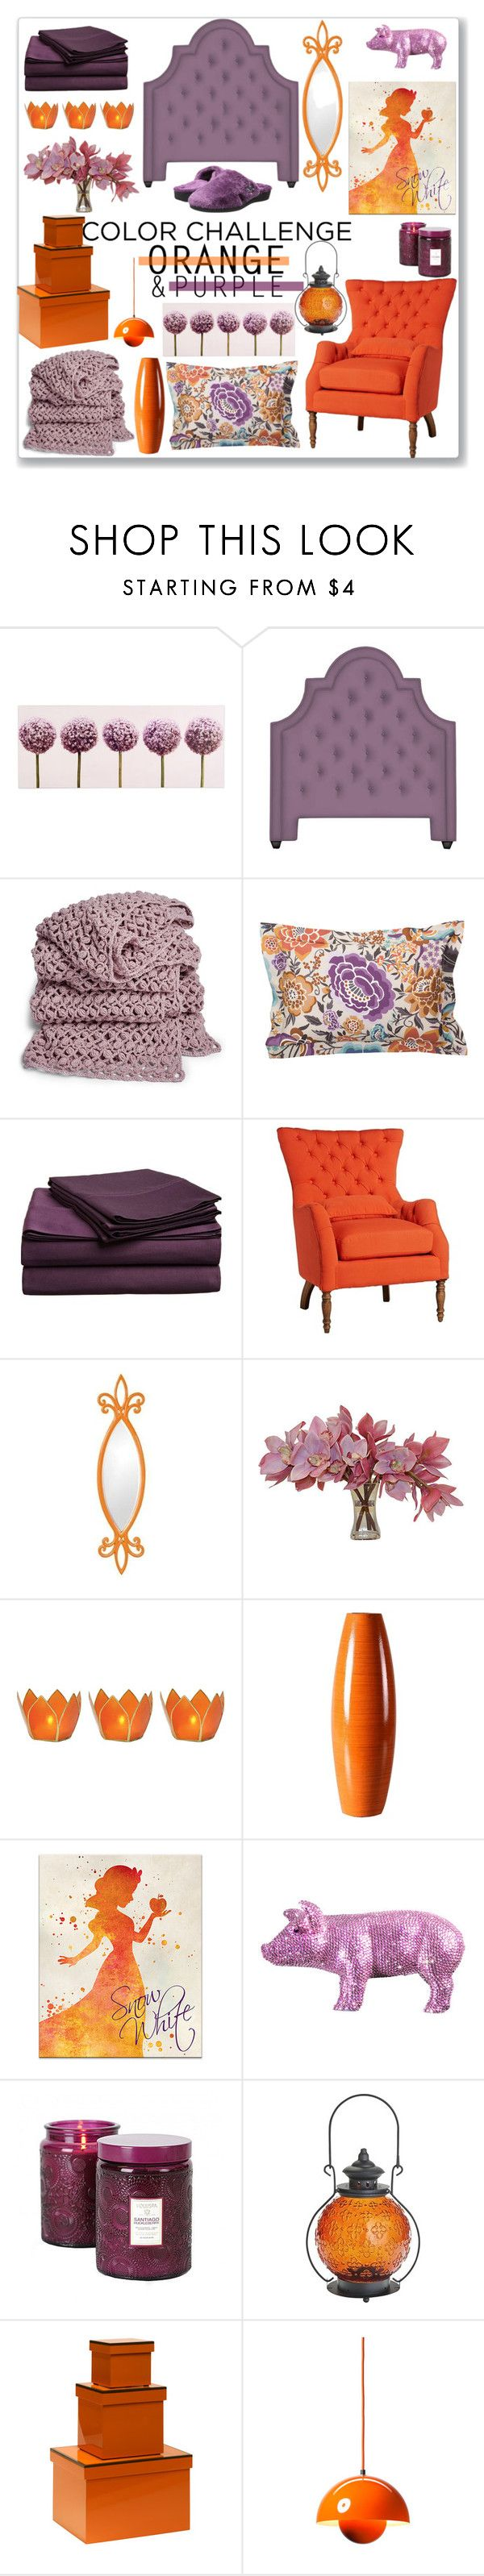 """Orange and Purple Bedroom"" by kimzarad1 ❤ liked on Polyvore featuring interior, interiors, interior design, home, home decor, interior decorating, Graham & Brown, Jonathan Adler, Missoni Home and Impressions"